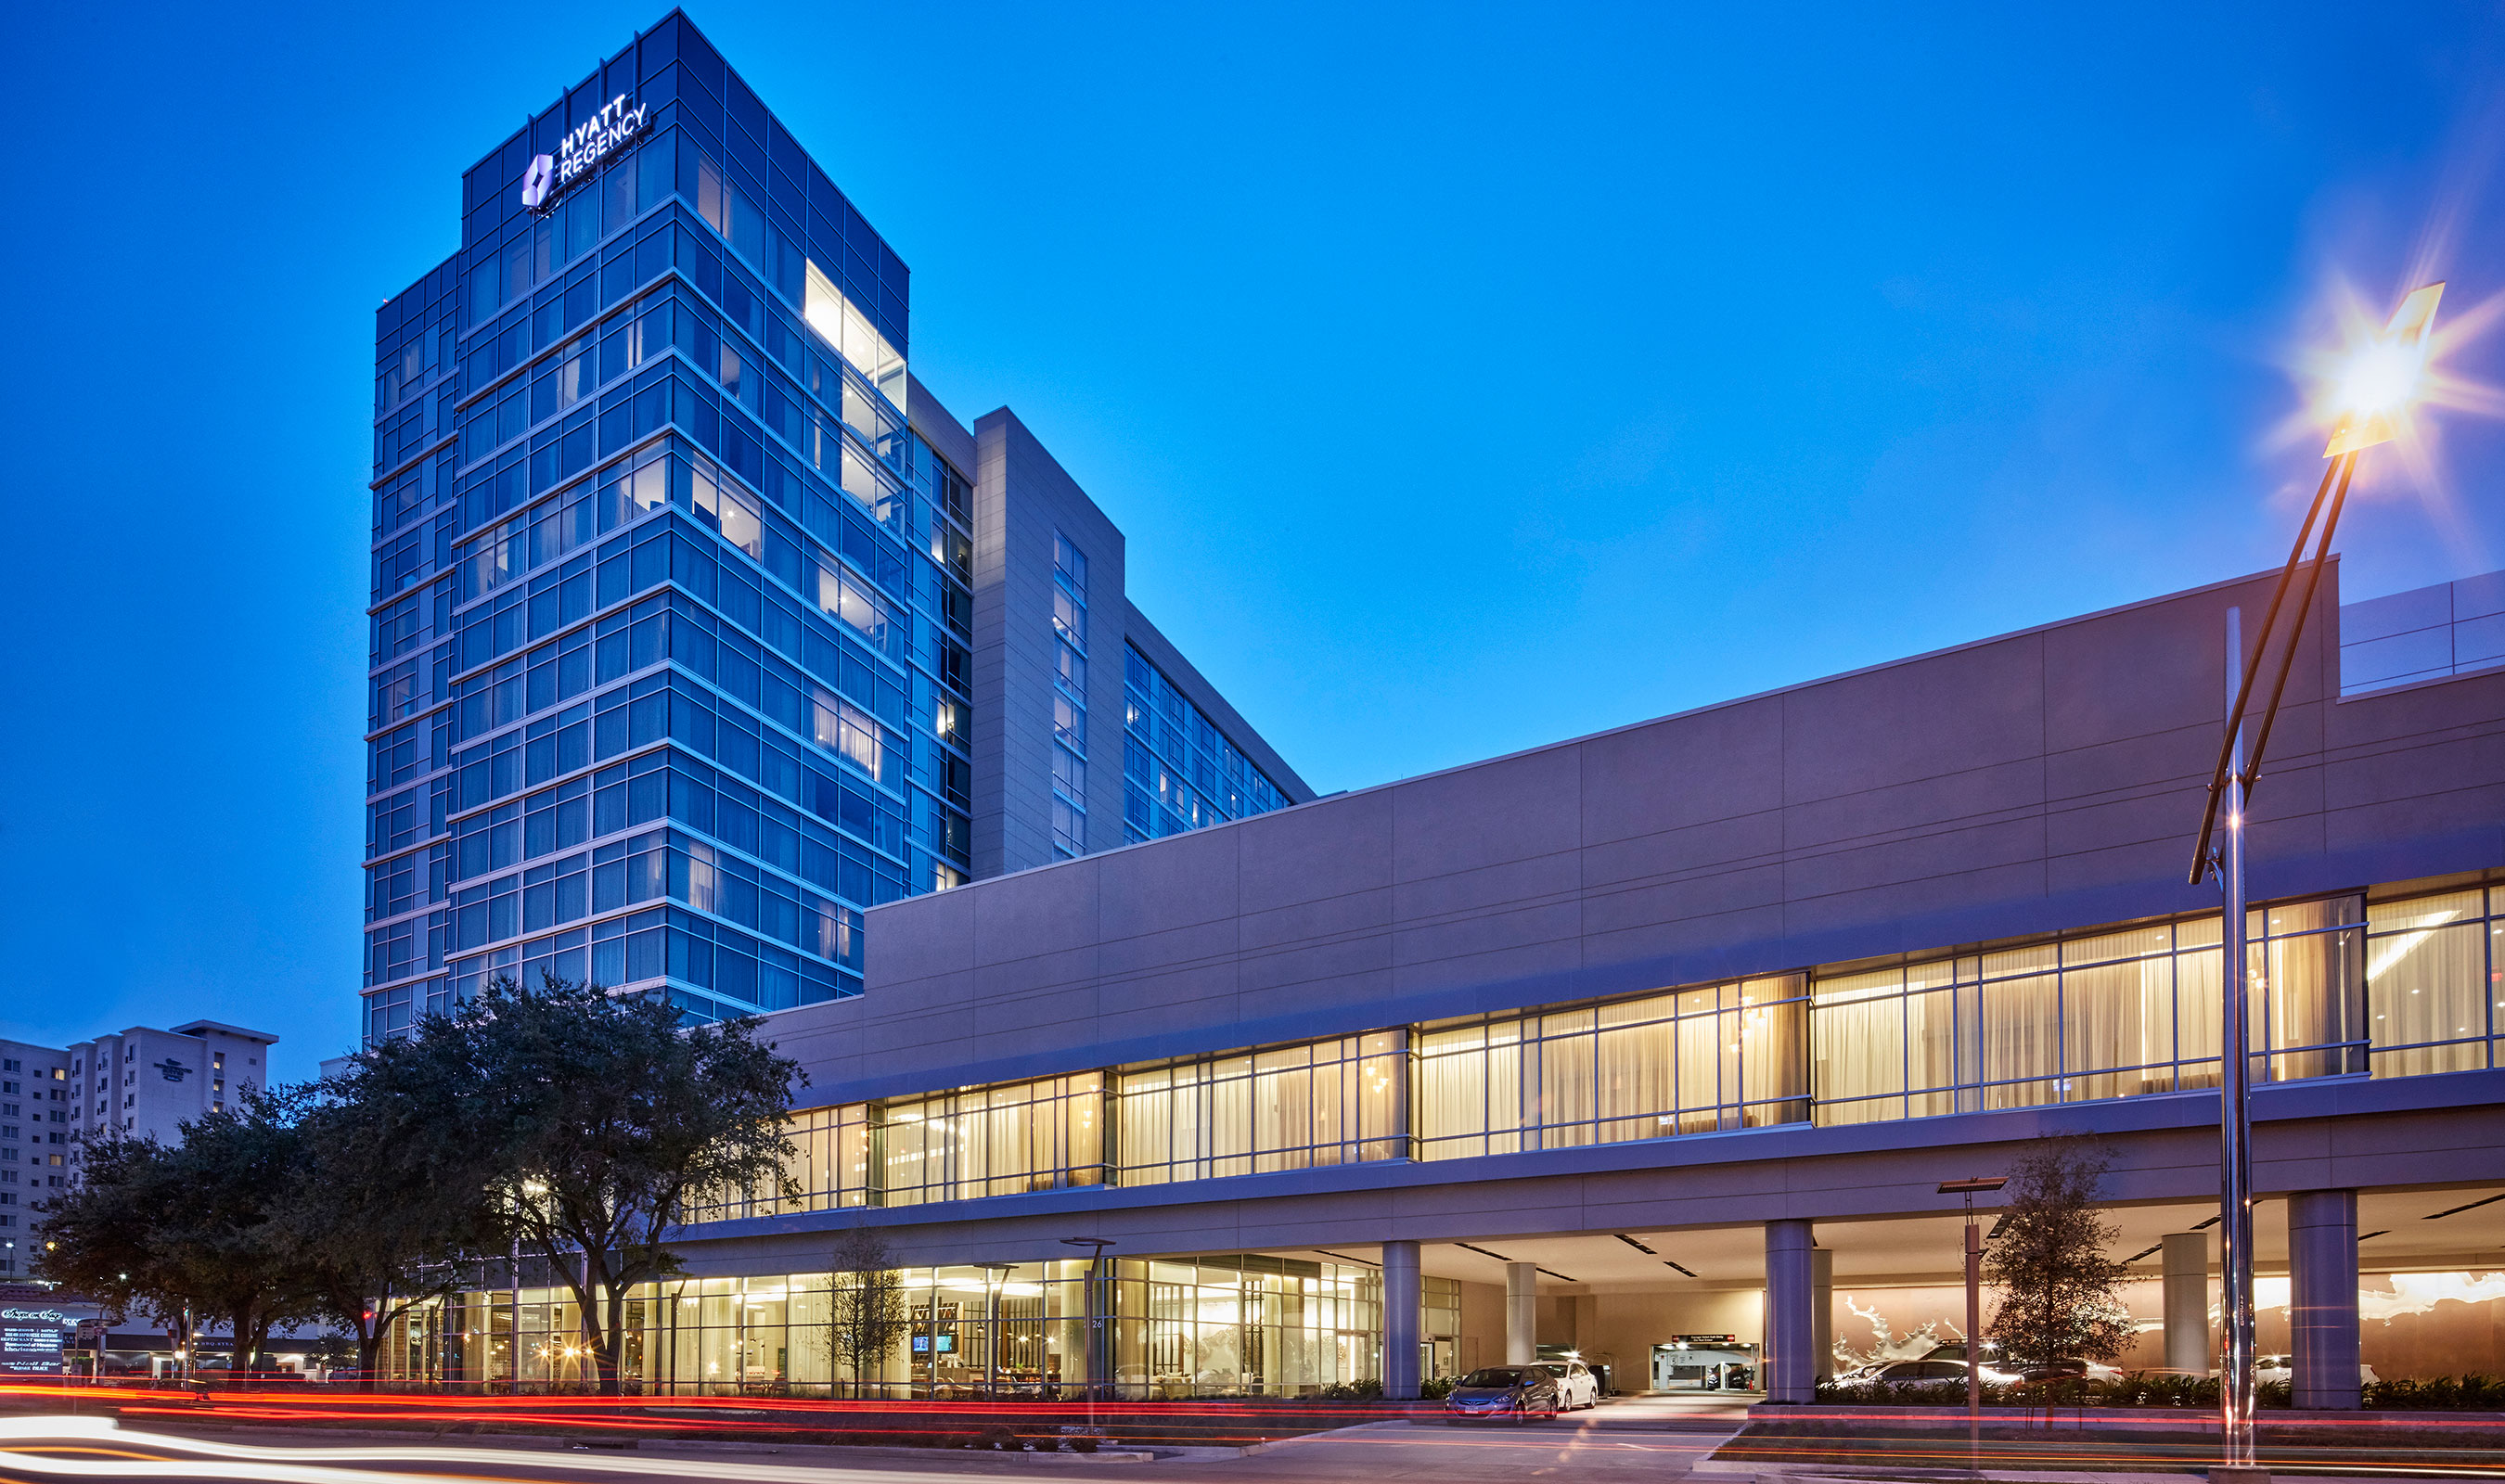 As part of the dynamic Uptown District in Houston, Texas, the Hyatt Regency Houston Galleria was designed by Gensler to appeal to business and leisure travelers